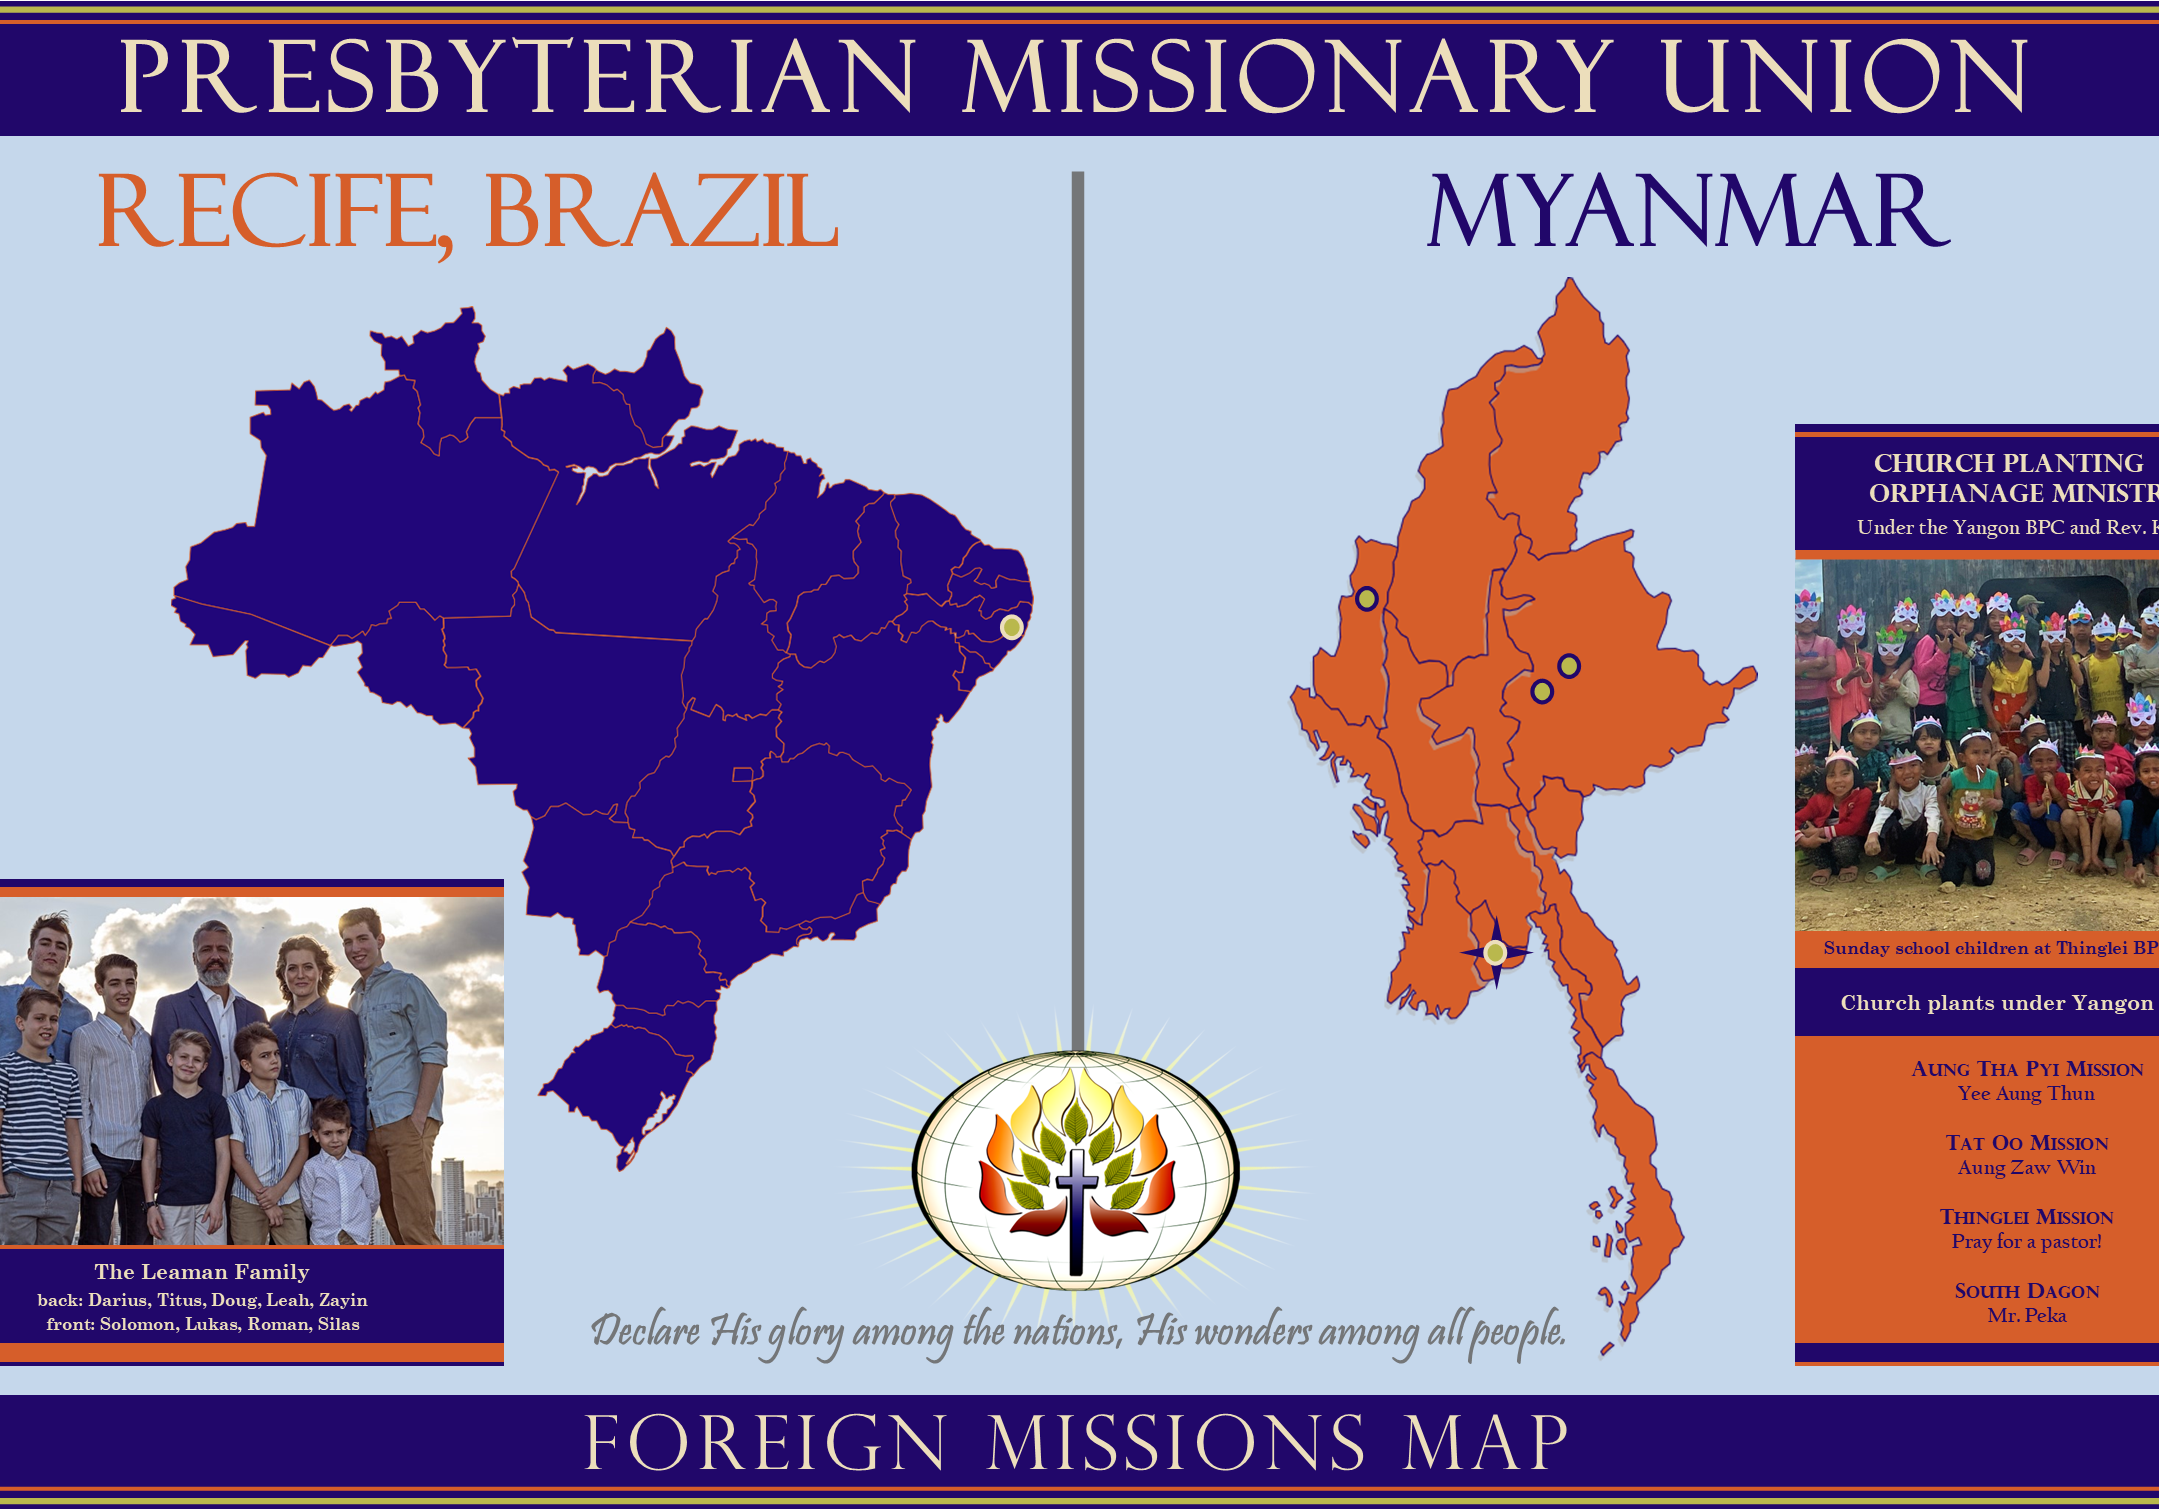 Foreign Missions Map pic